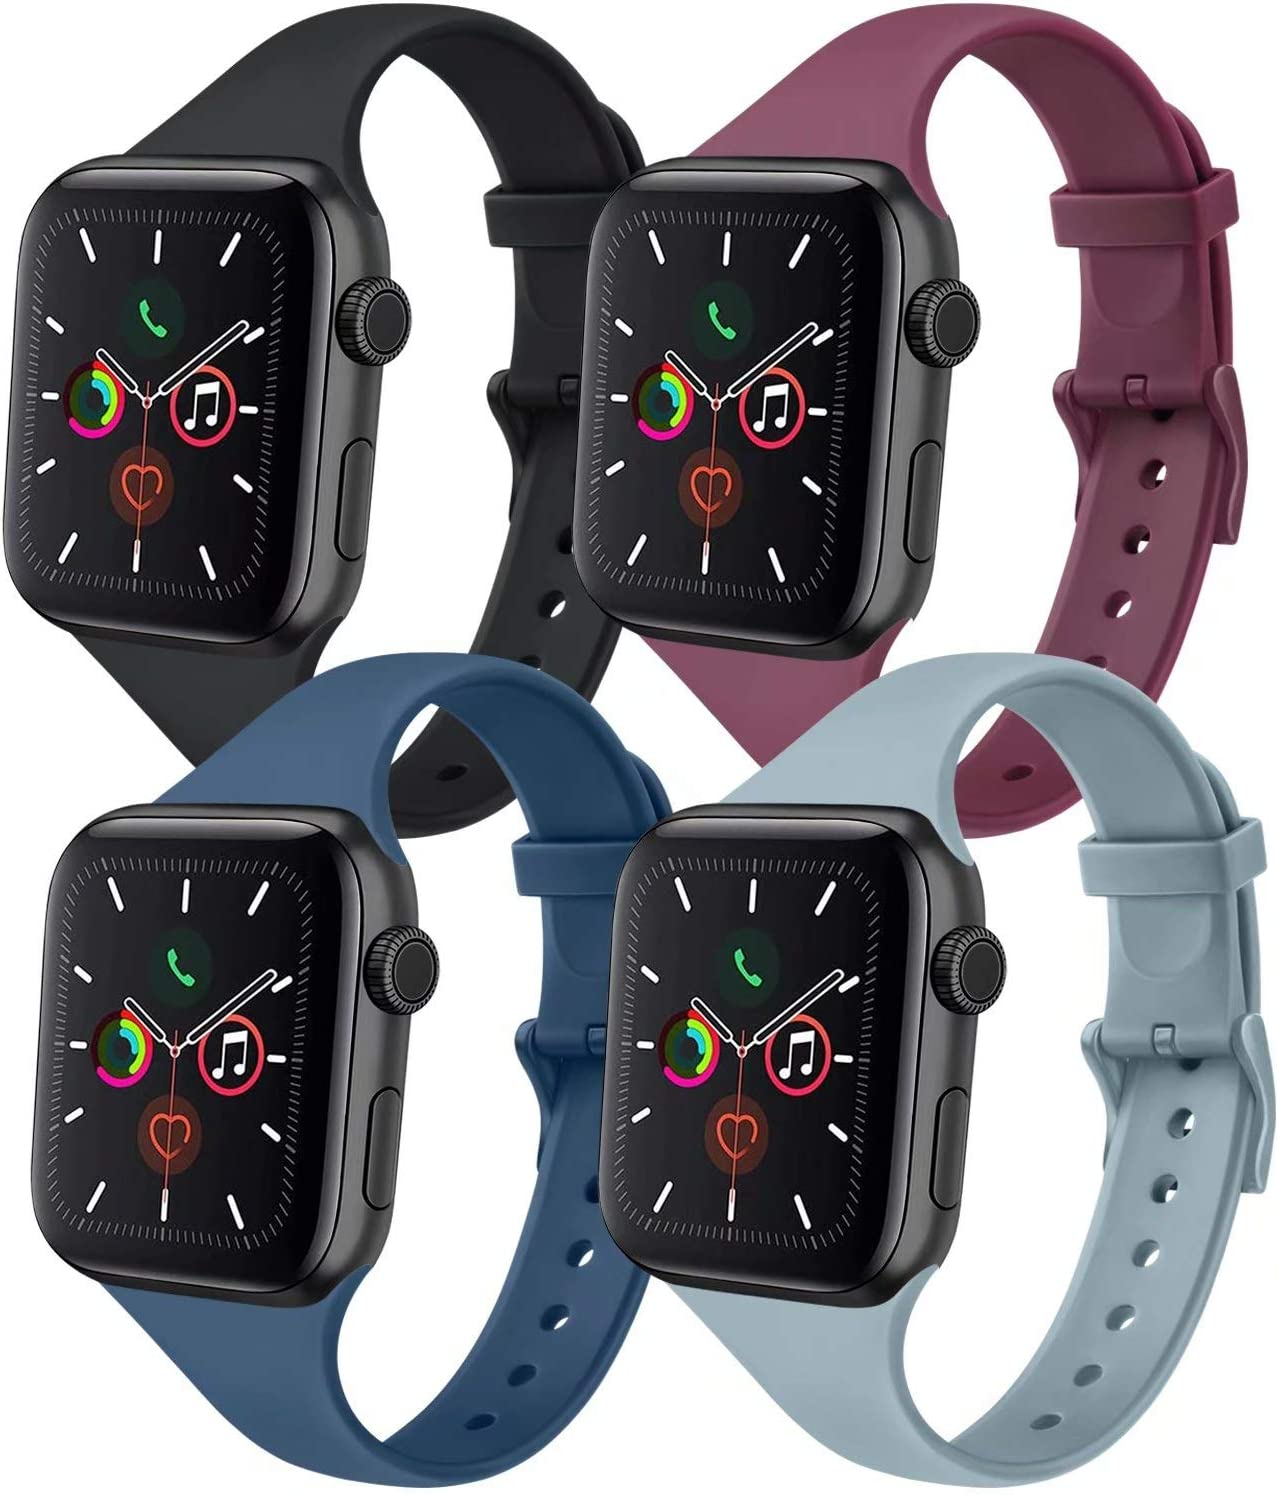 IEOVIEE [Pack 4] Silicone Slim Bands Compatible with Apple Watch bands 42mm 38mm 44mm 40mm Series 6 5 4 3 & SE, Narrow Replacement Wristbands (Black/Gray/Navy Blue/Wine Red, 38mm/40mm M/L)